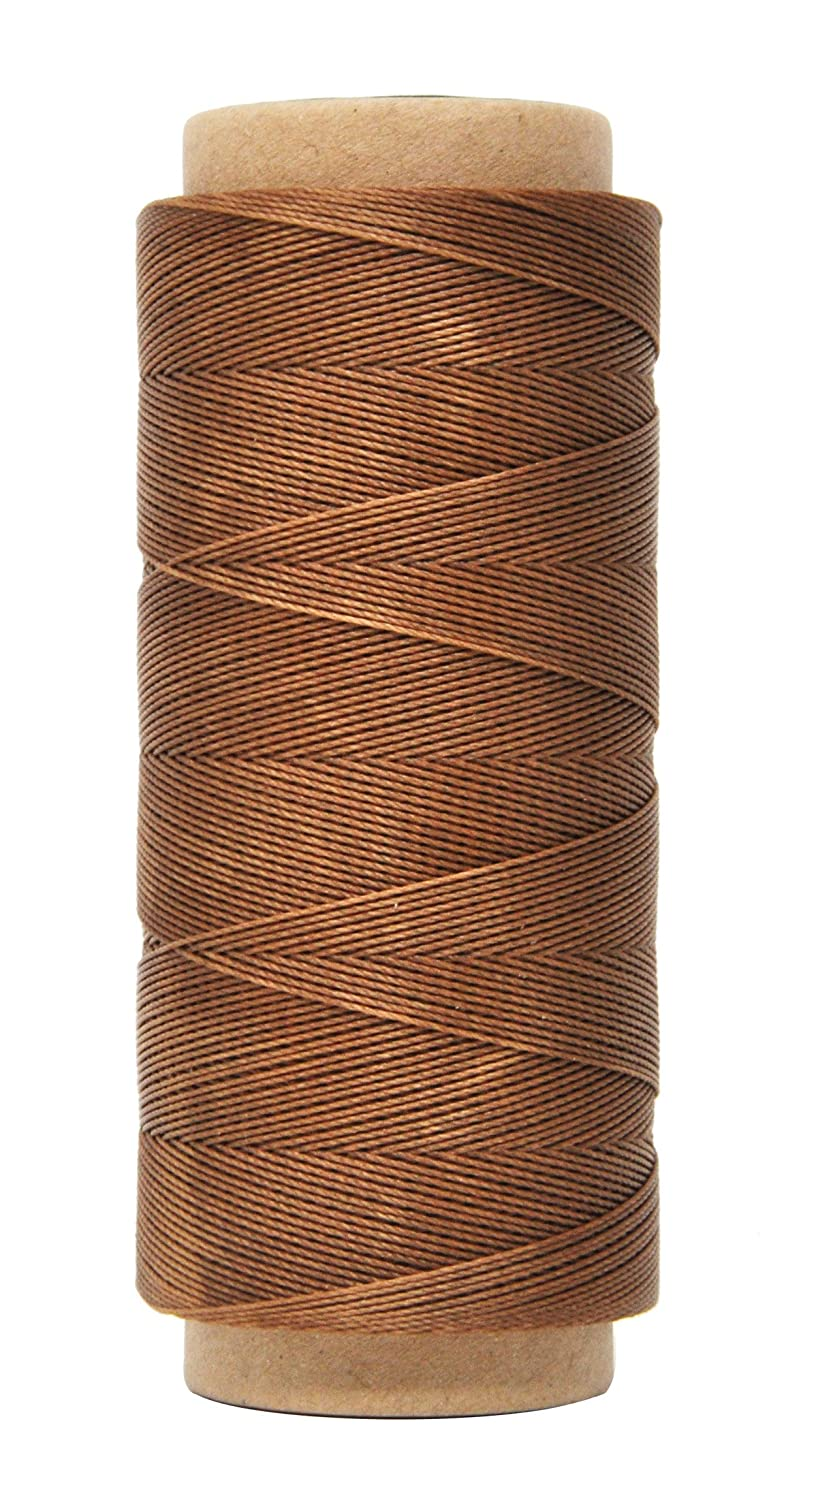 Mandala Crafts 0.45mm Leather Sewing Hand Stitching Jewelry Craft Round Waxed Thread String Cord (0.45mm, Natural)